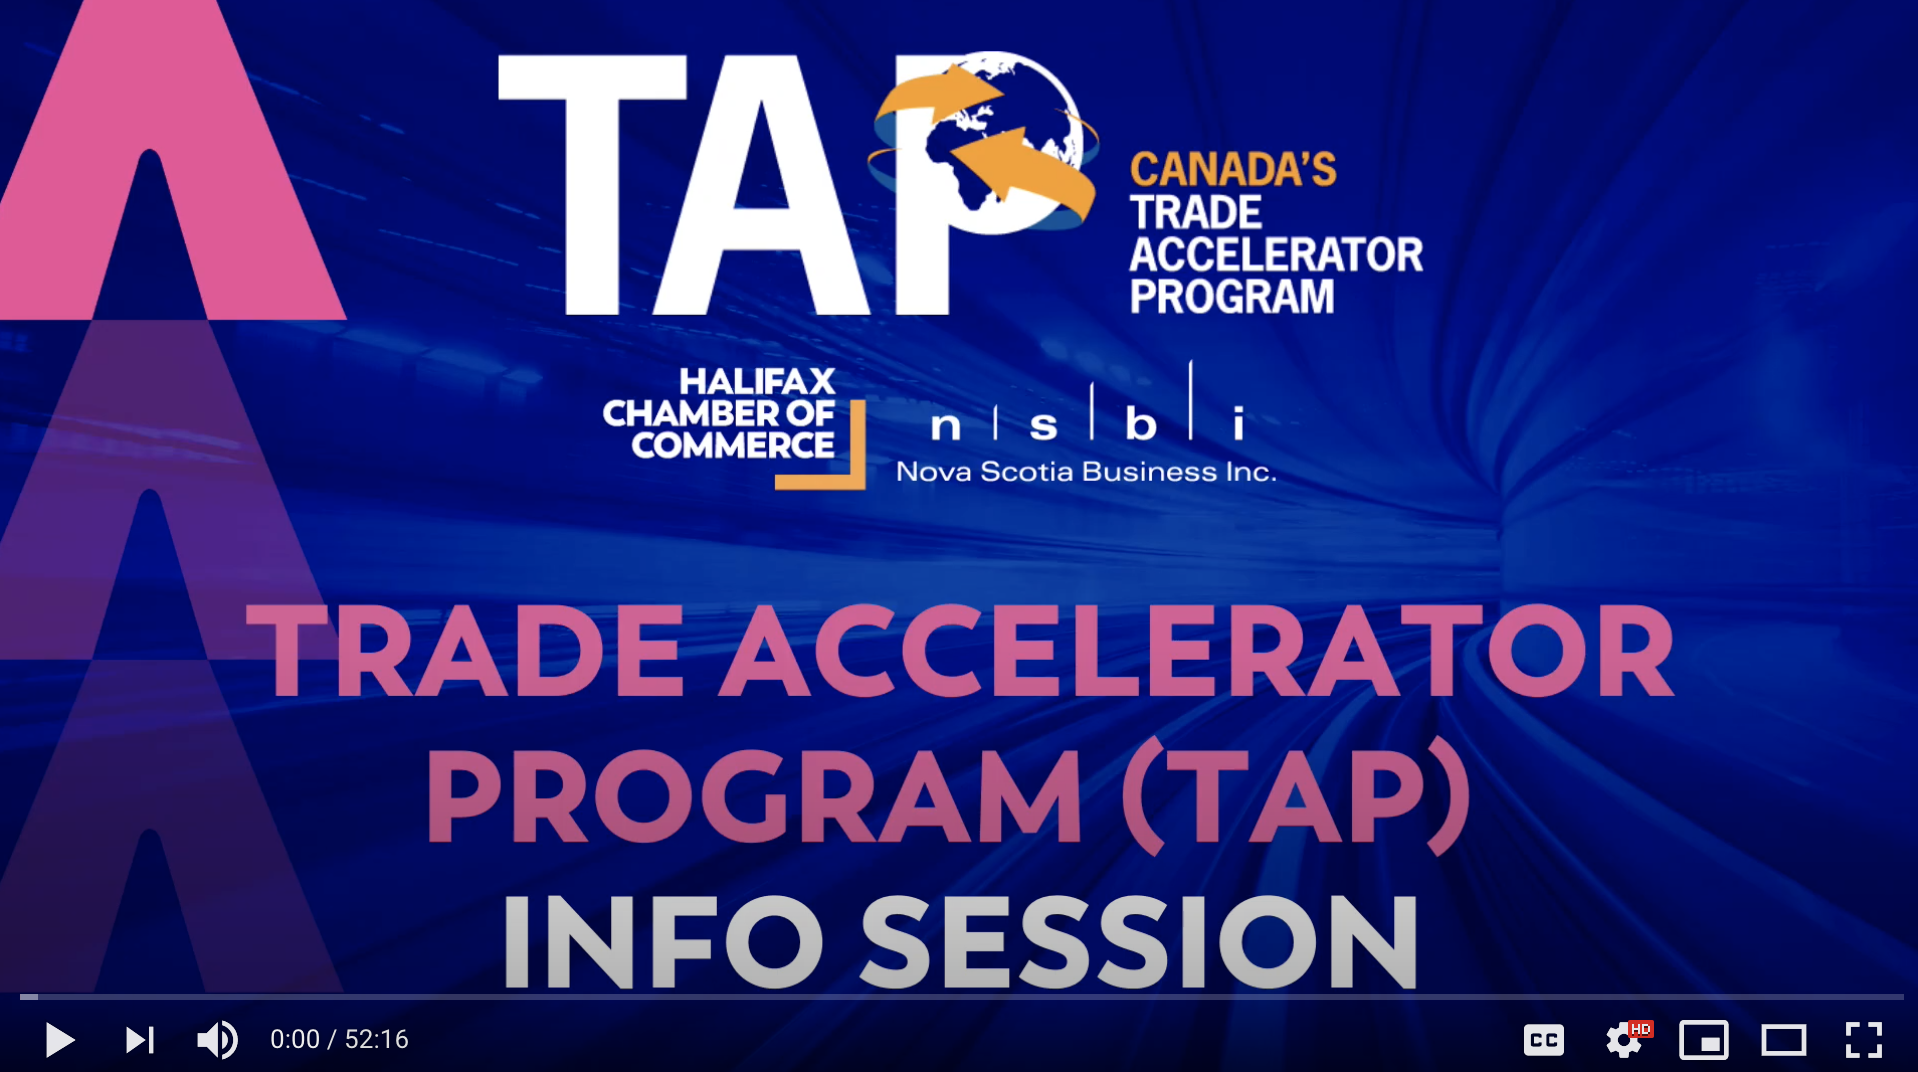 TAP Info Session